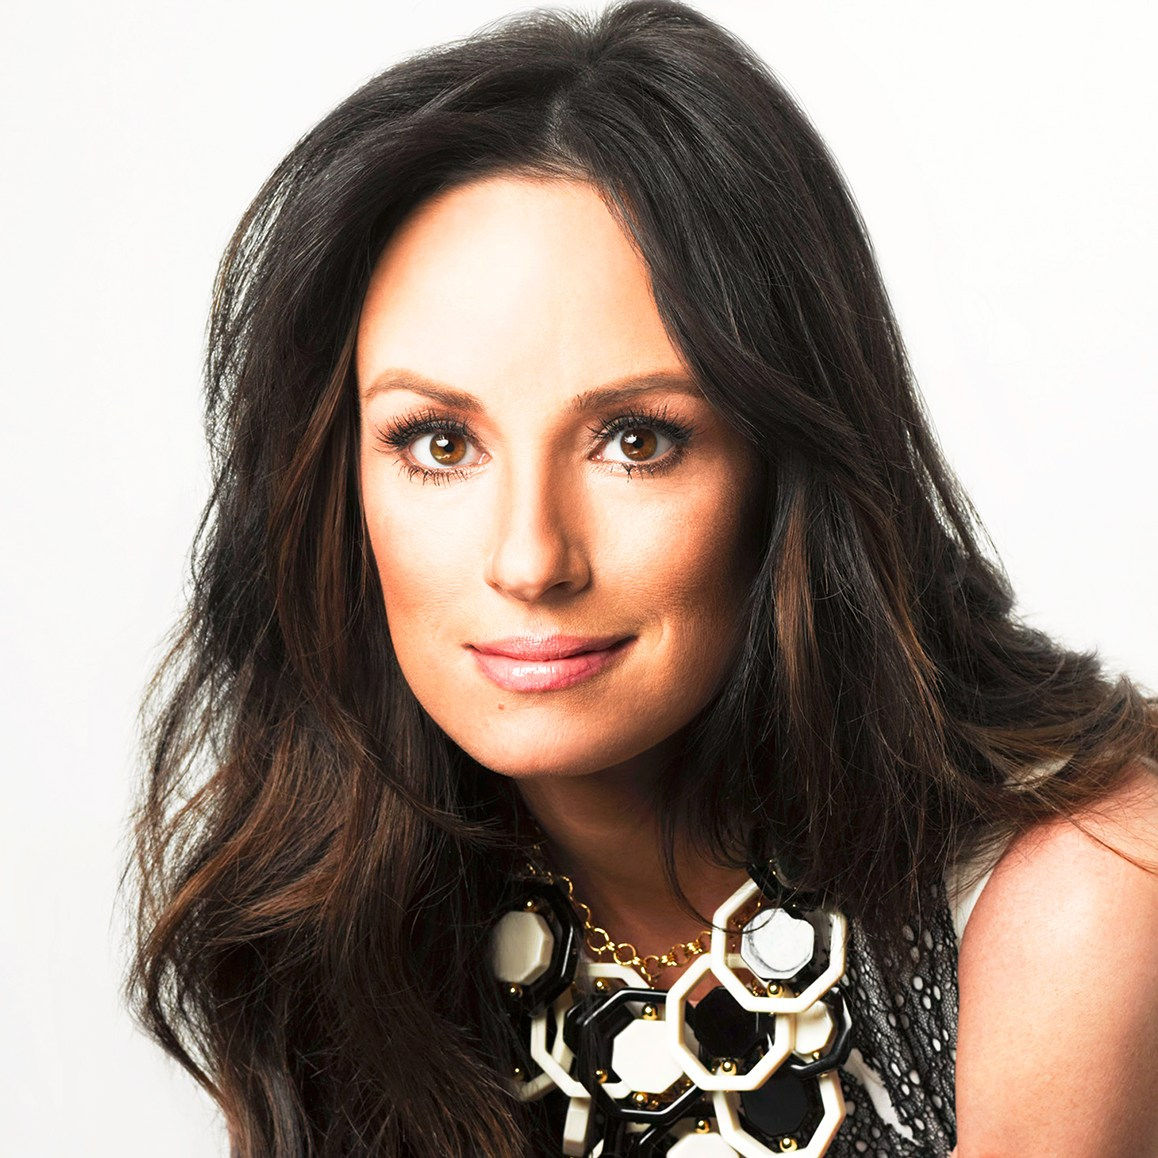 Catt Sadler on 'E! News'